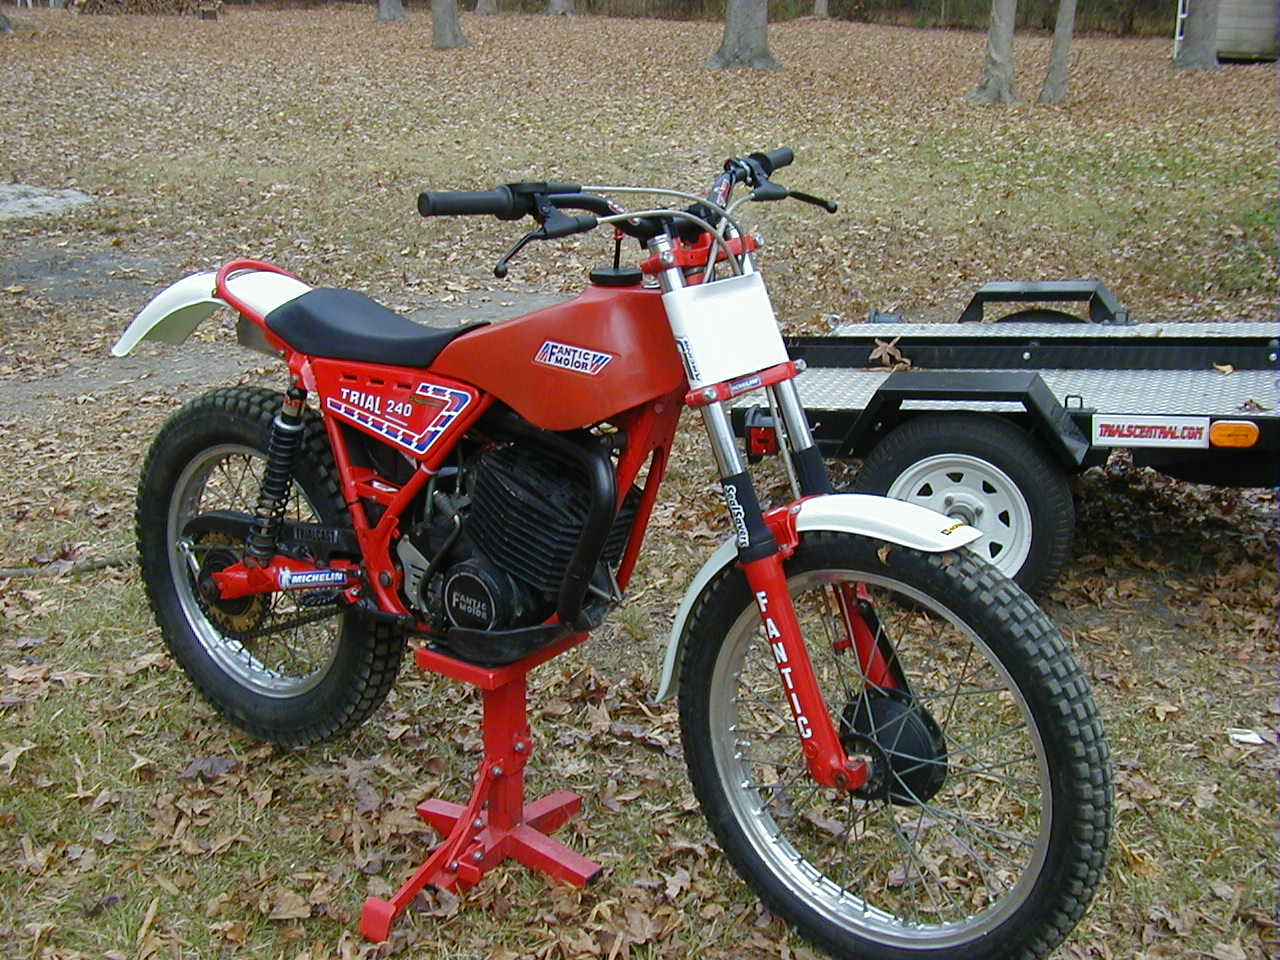 240 Manual Engine Diagram Fantic Trials Central 250 Motorcycle Share This Post